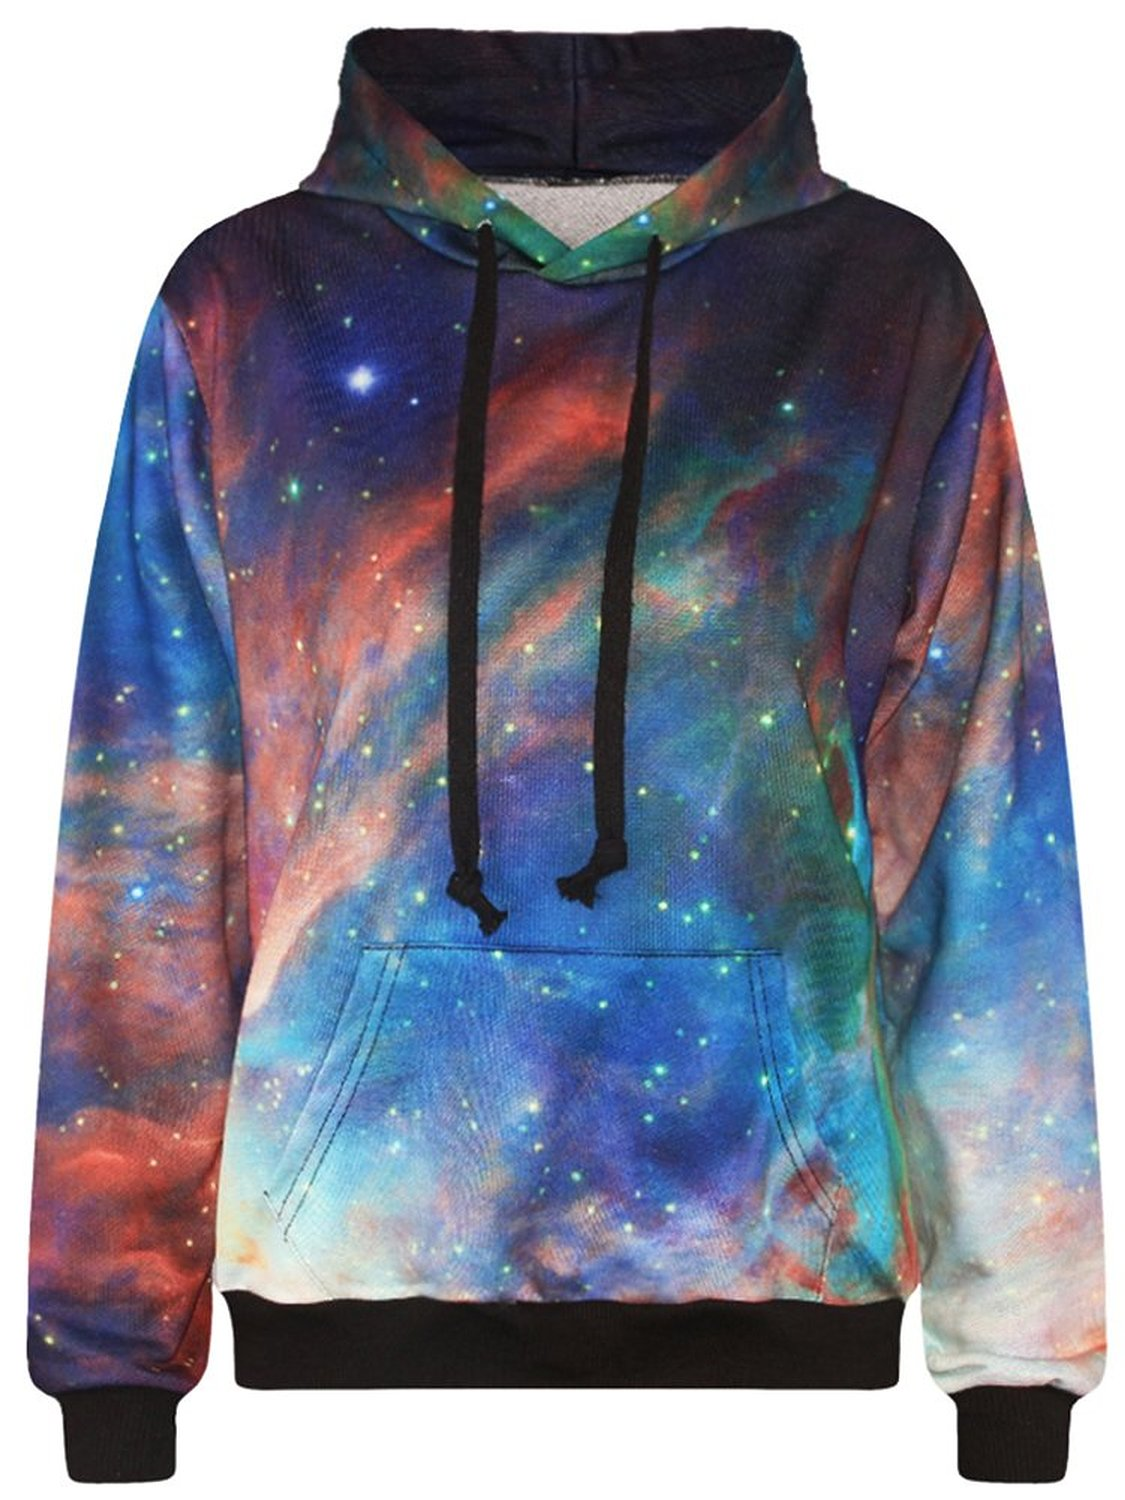 Imilan Neon Galaxy Sweatshirt Hoodies Printed Jacket